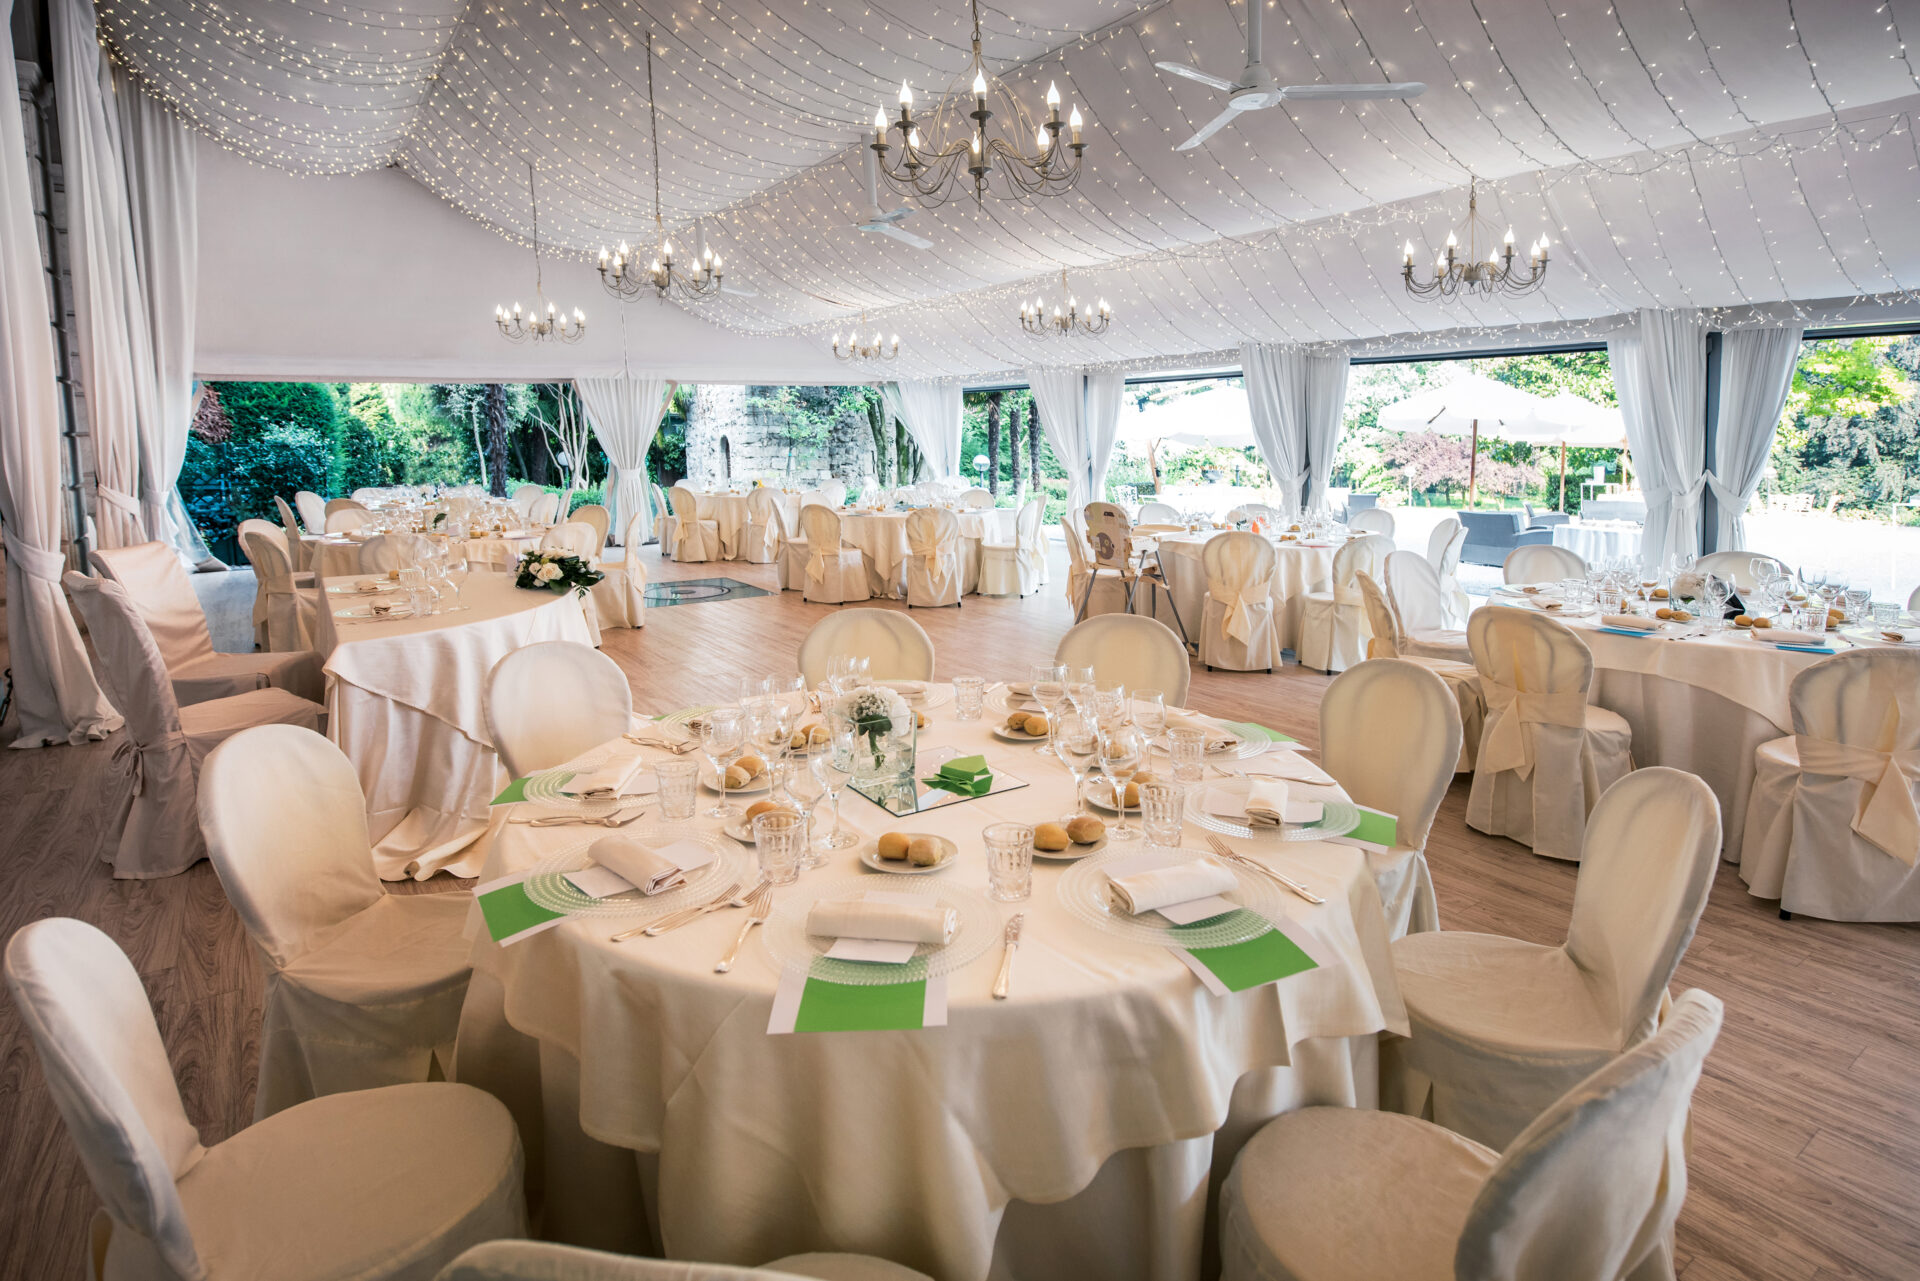 Tables and chairs set at a wedding venue